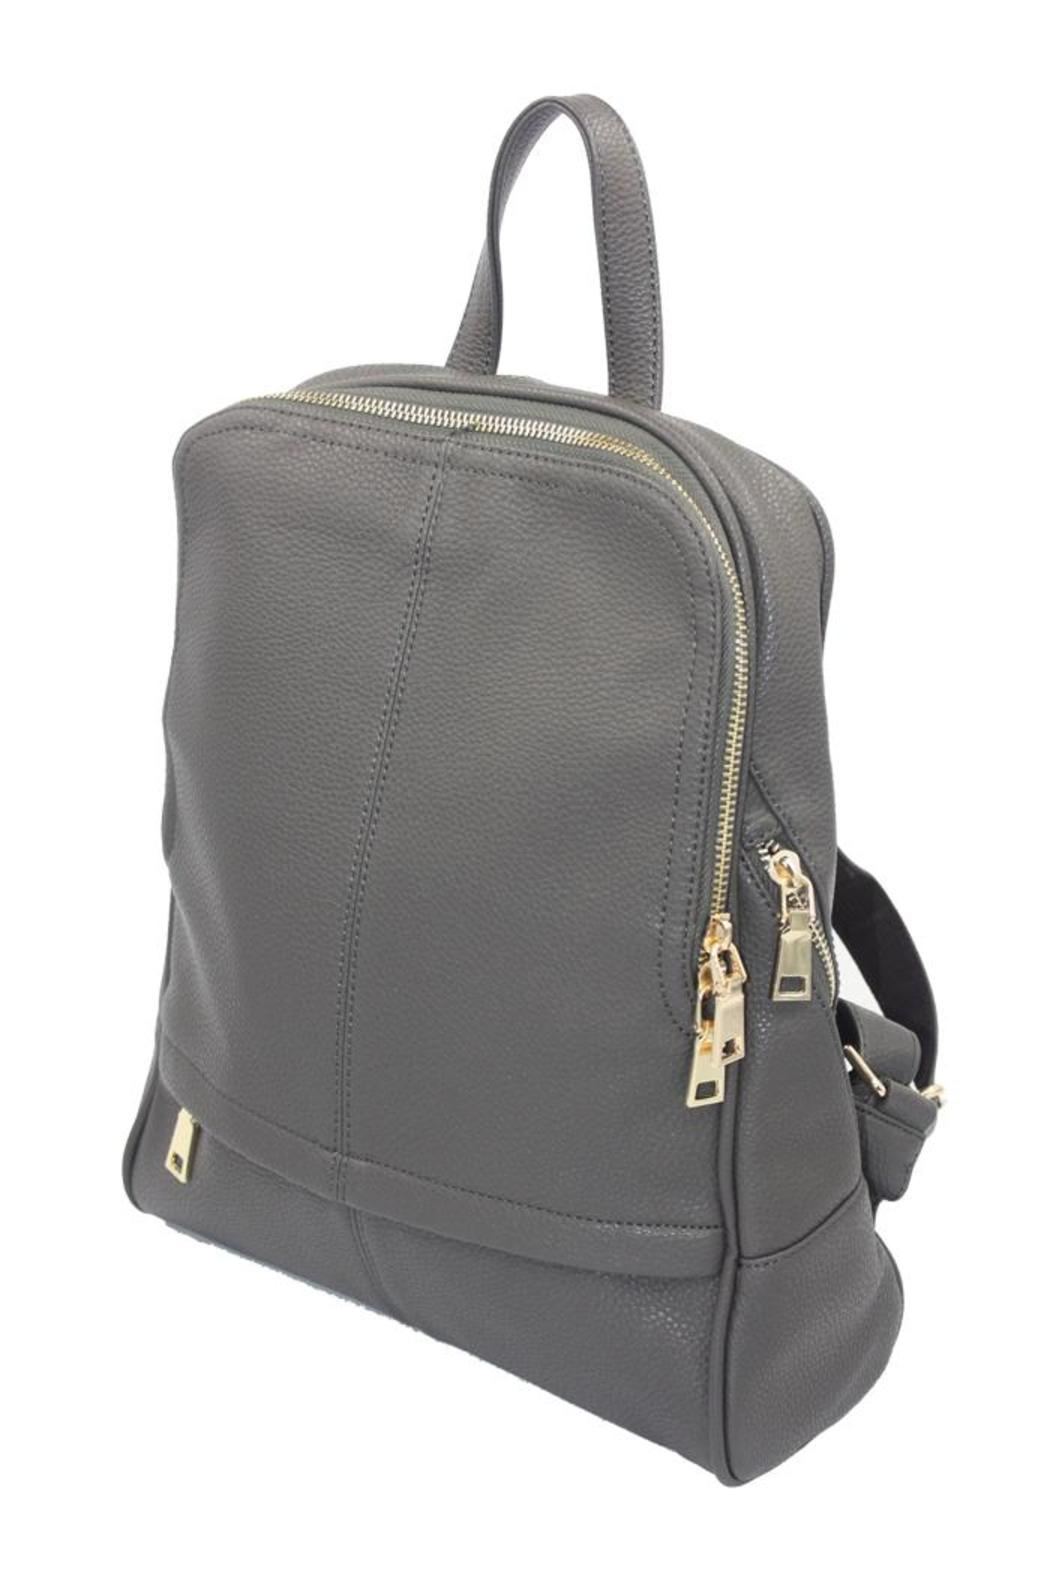 FaFa-Montreal Carie-Vegan Leather Backpack from Montreal by FaFa ...